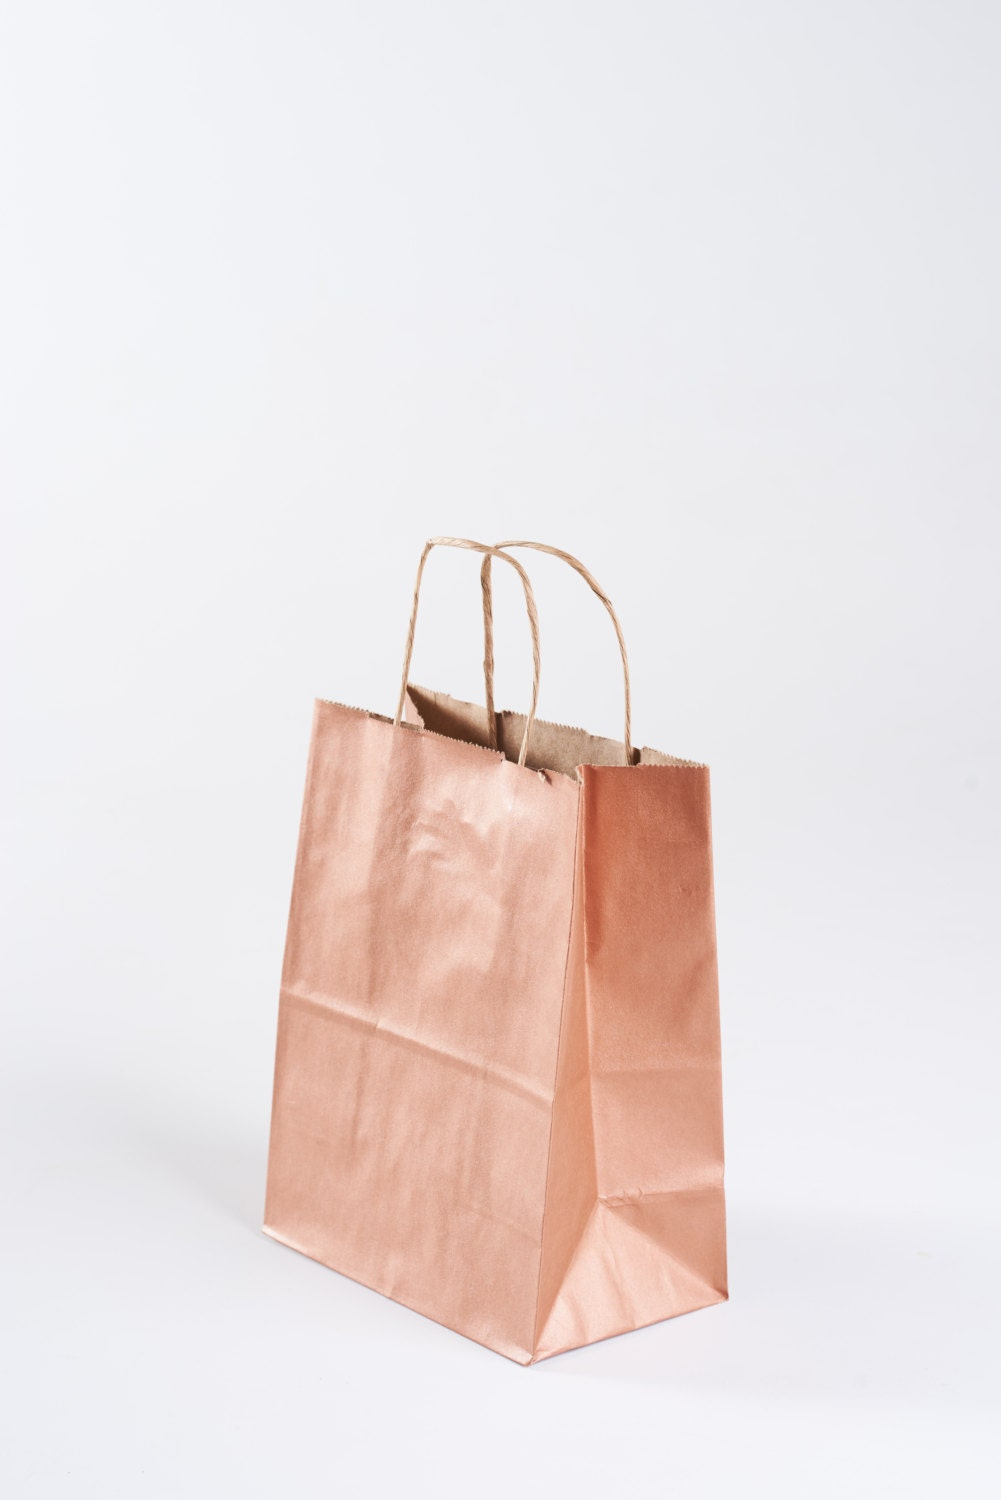 75 Rose Gold Gift Bags with Handles for Wedding Guests, Welcome Bag ...